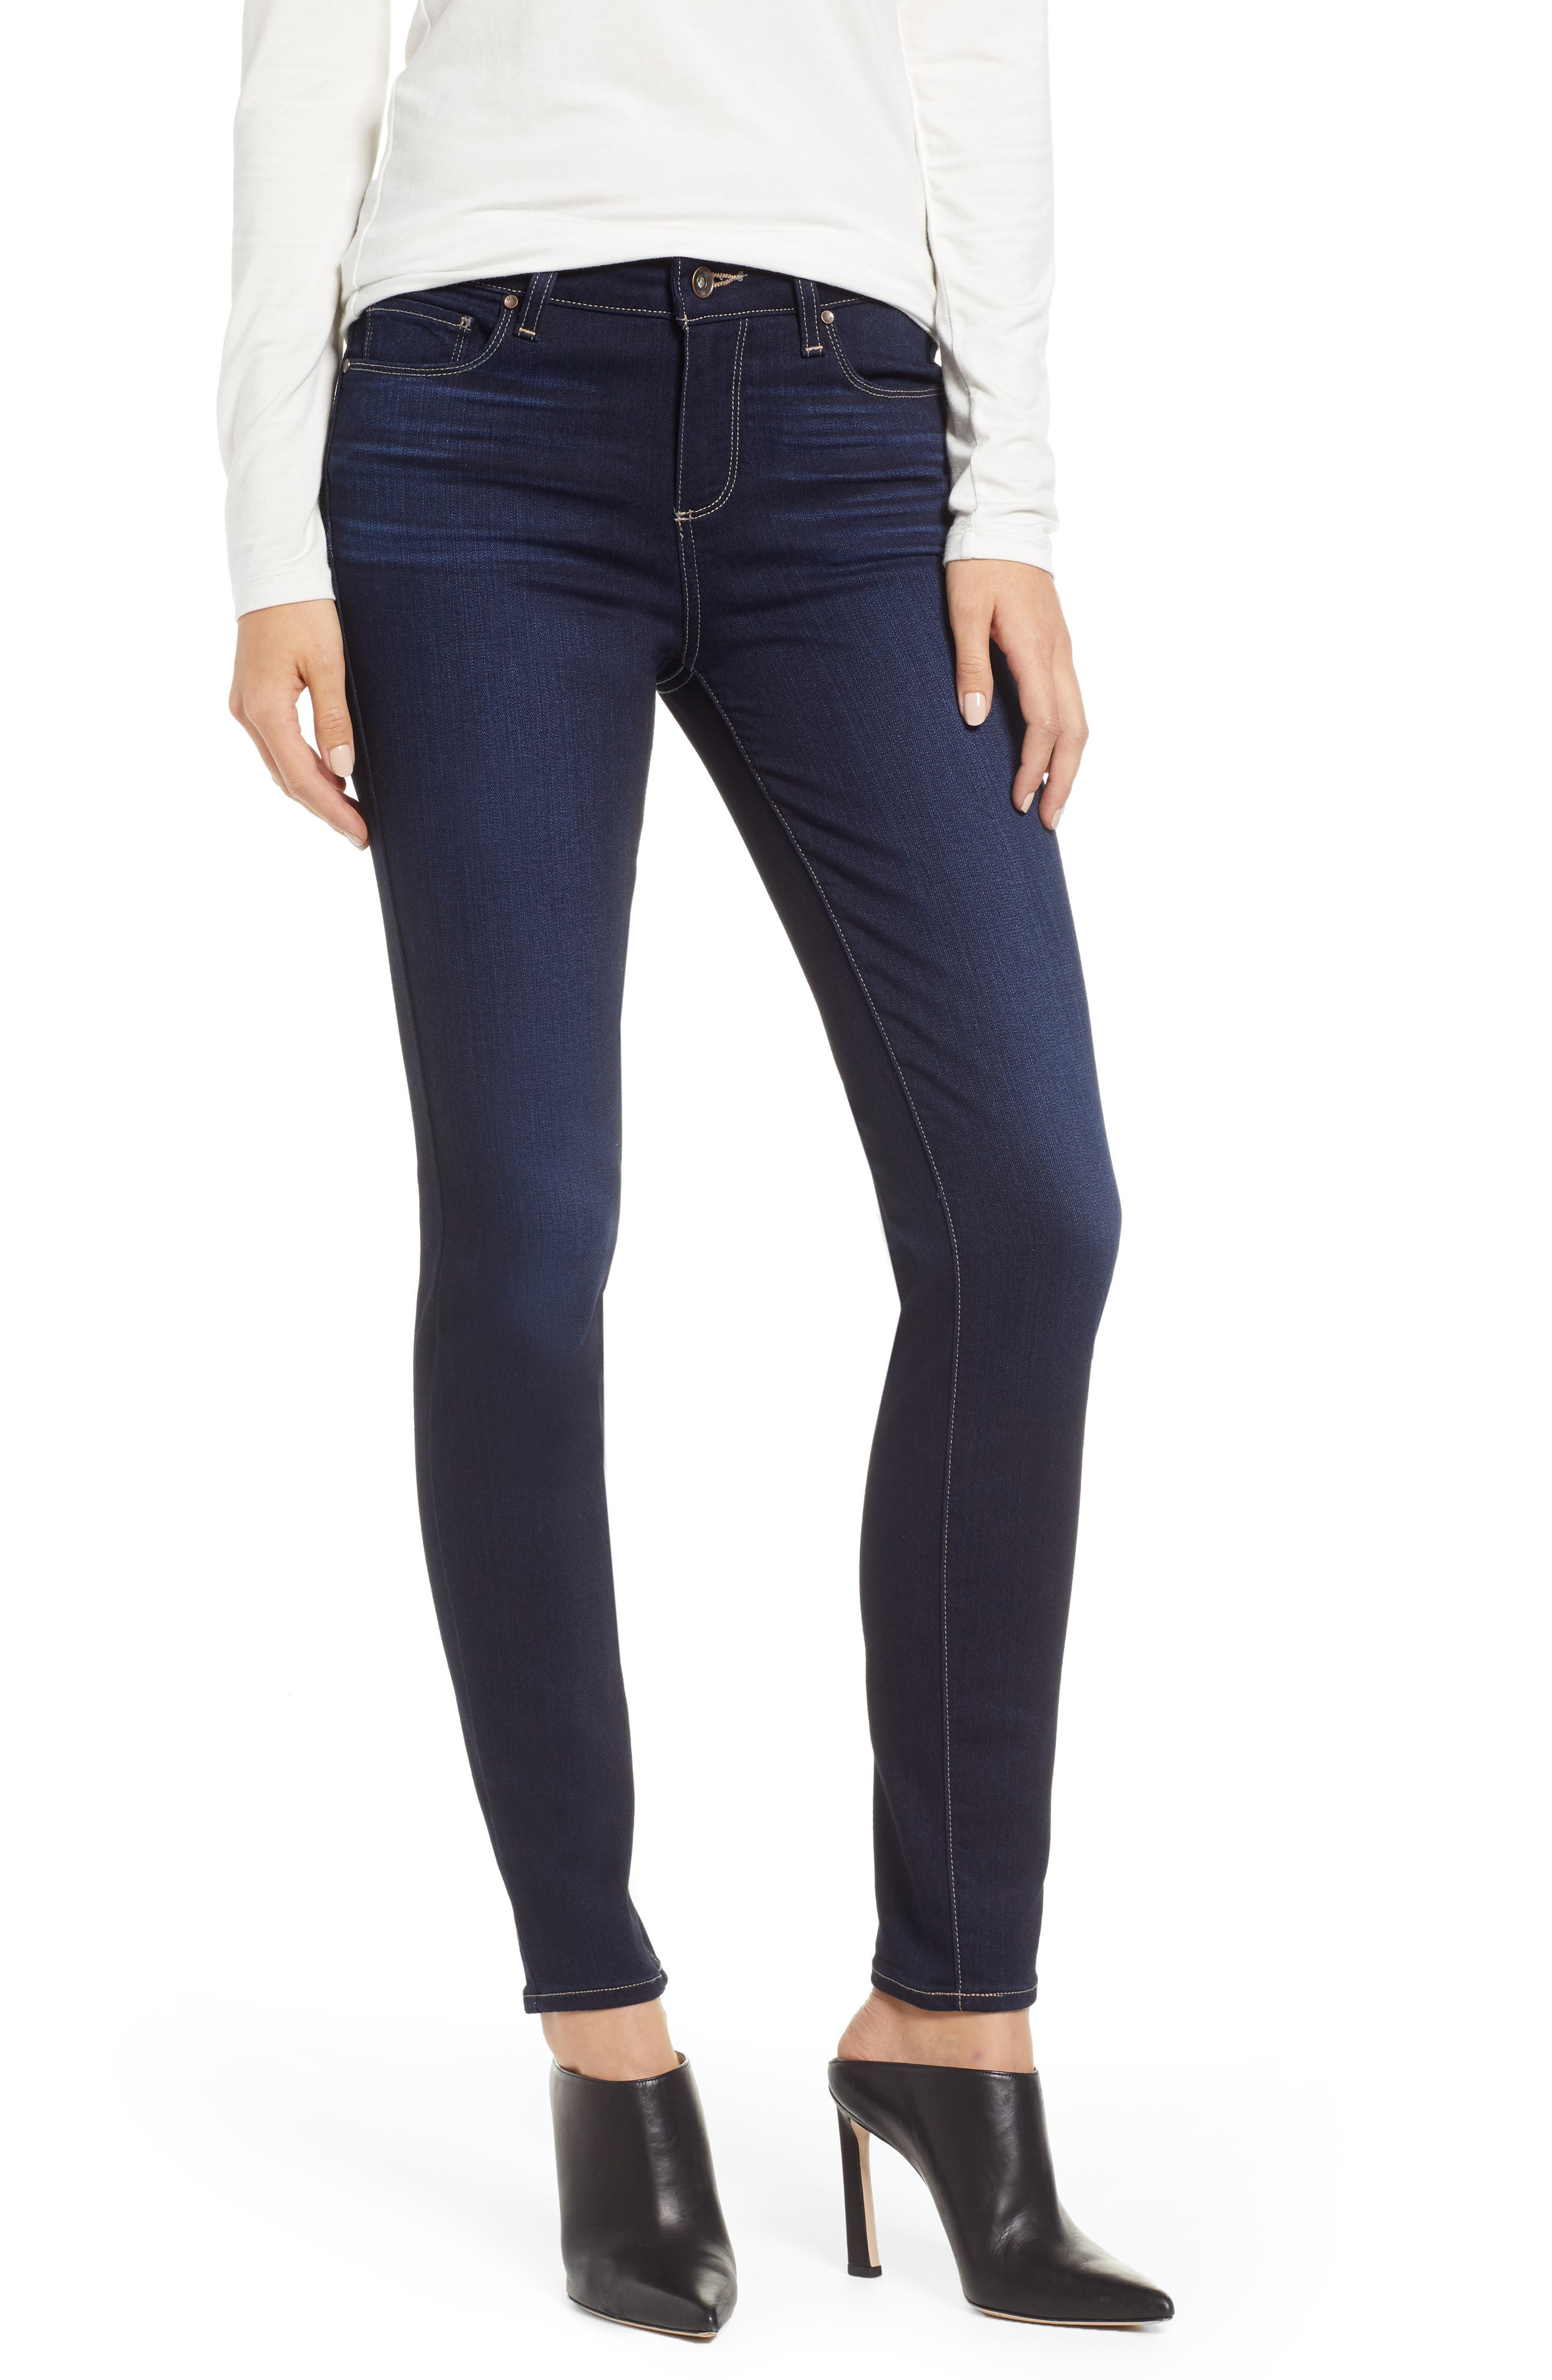 PAIGE Transcend - Verdugo Ultra Skinny Jeans, Main, color, ACADIA